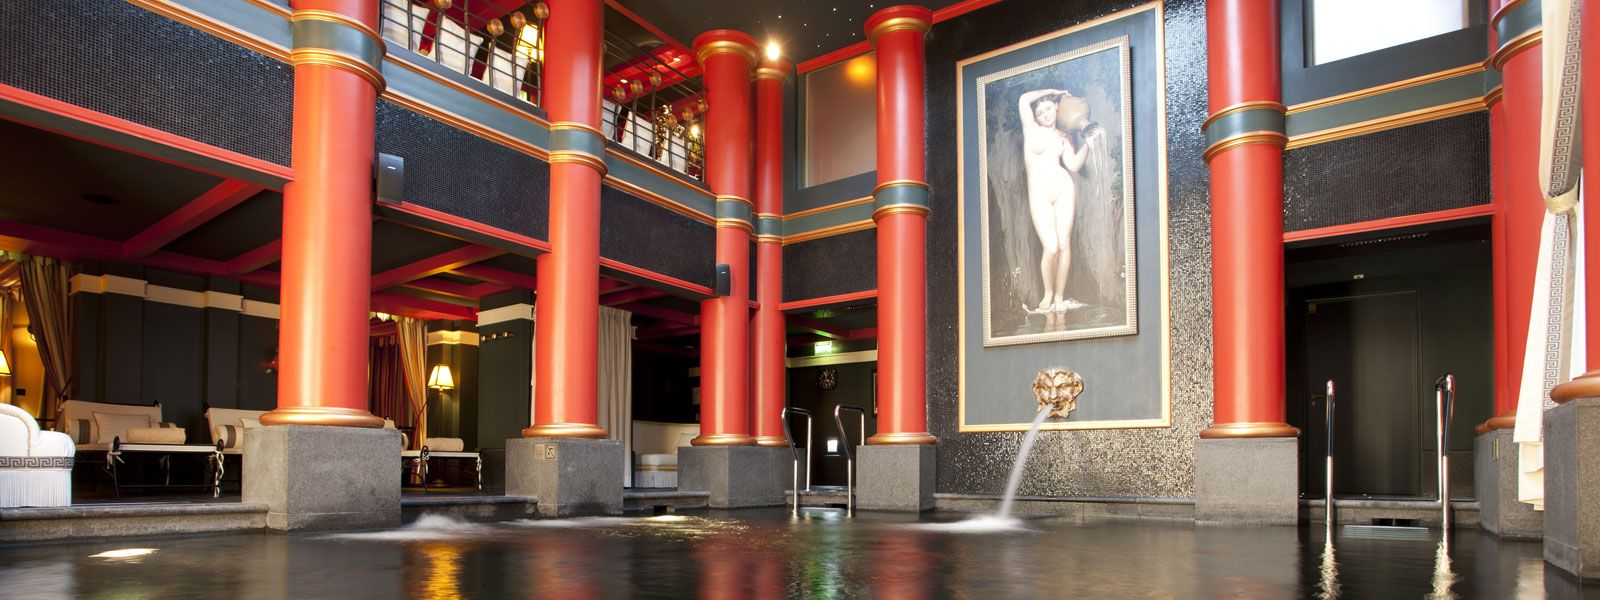 Intercontinental Bordeaux Le Grand Hotel Index Site Officiel Hotel 5 Etoiles Bordeaux Grand Hotel Luxury Hotel Best Rooftop Bars